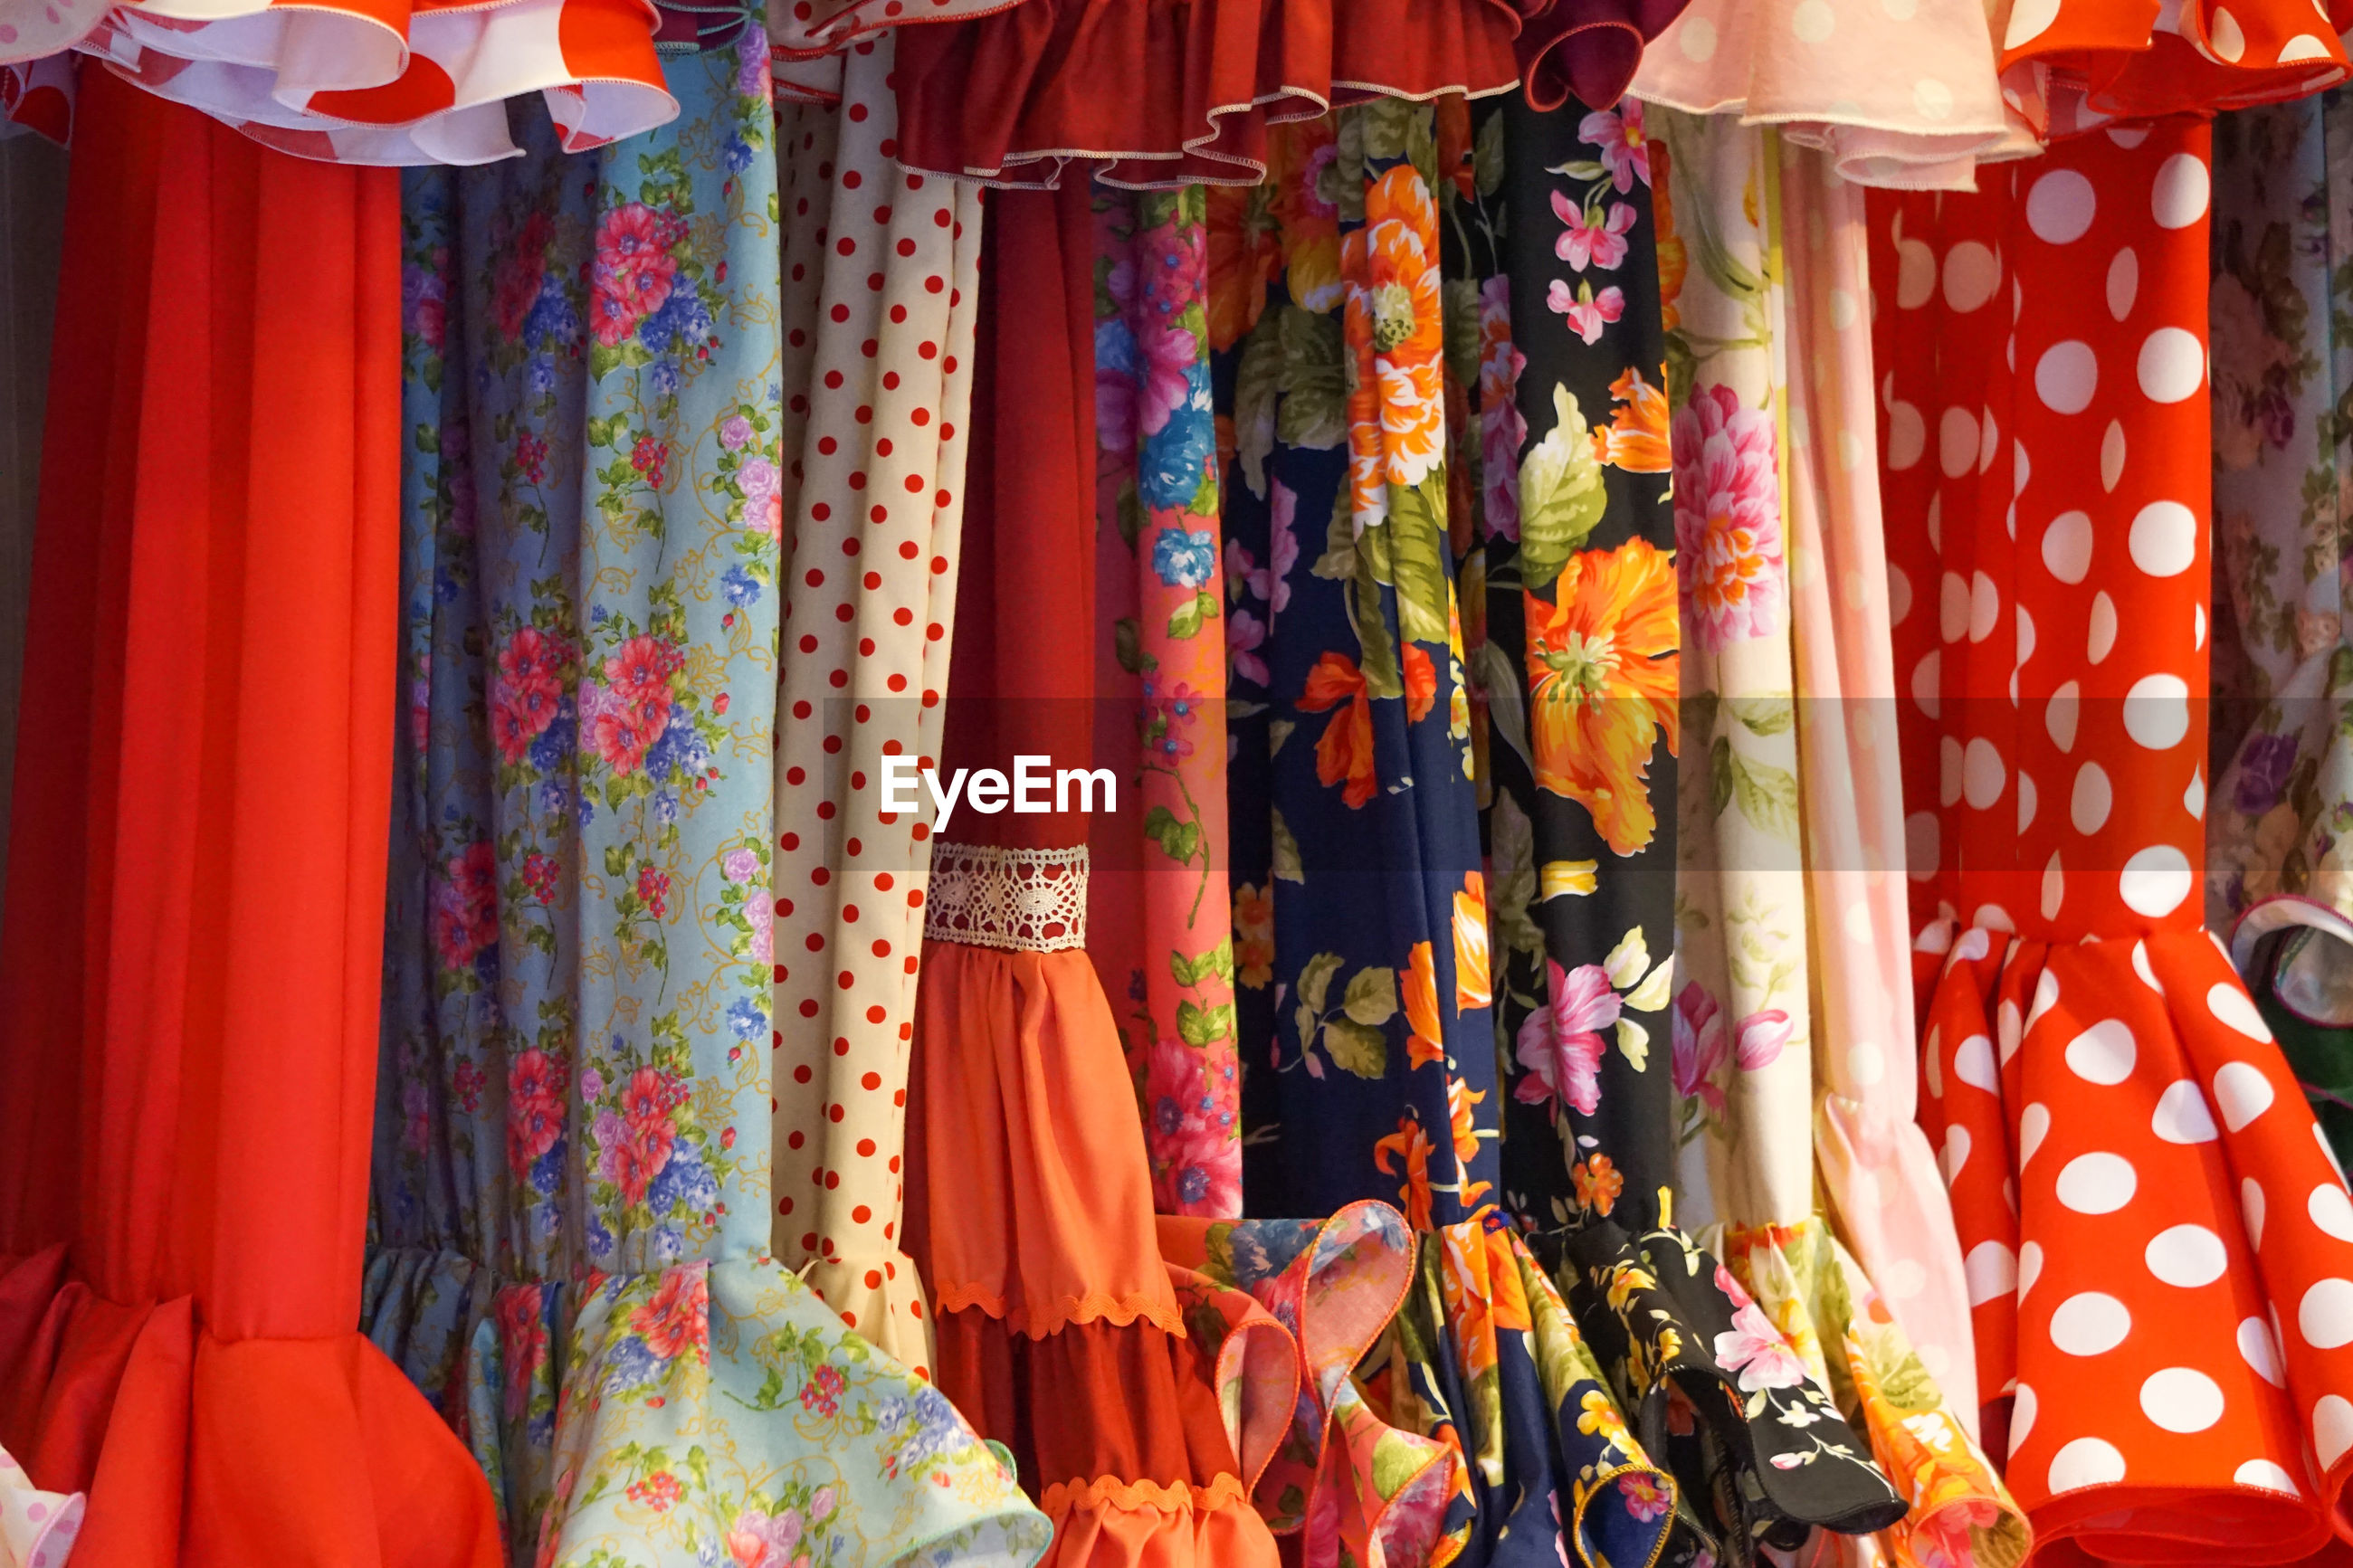 Dresses hanging in market for sale